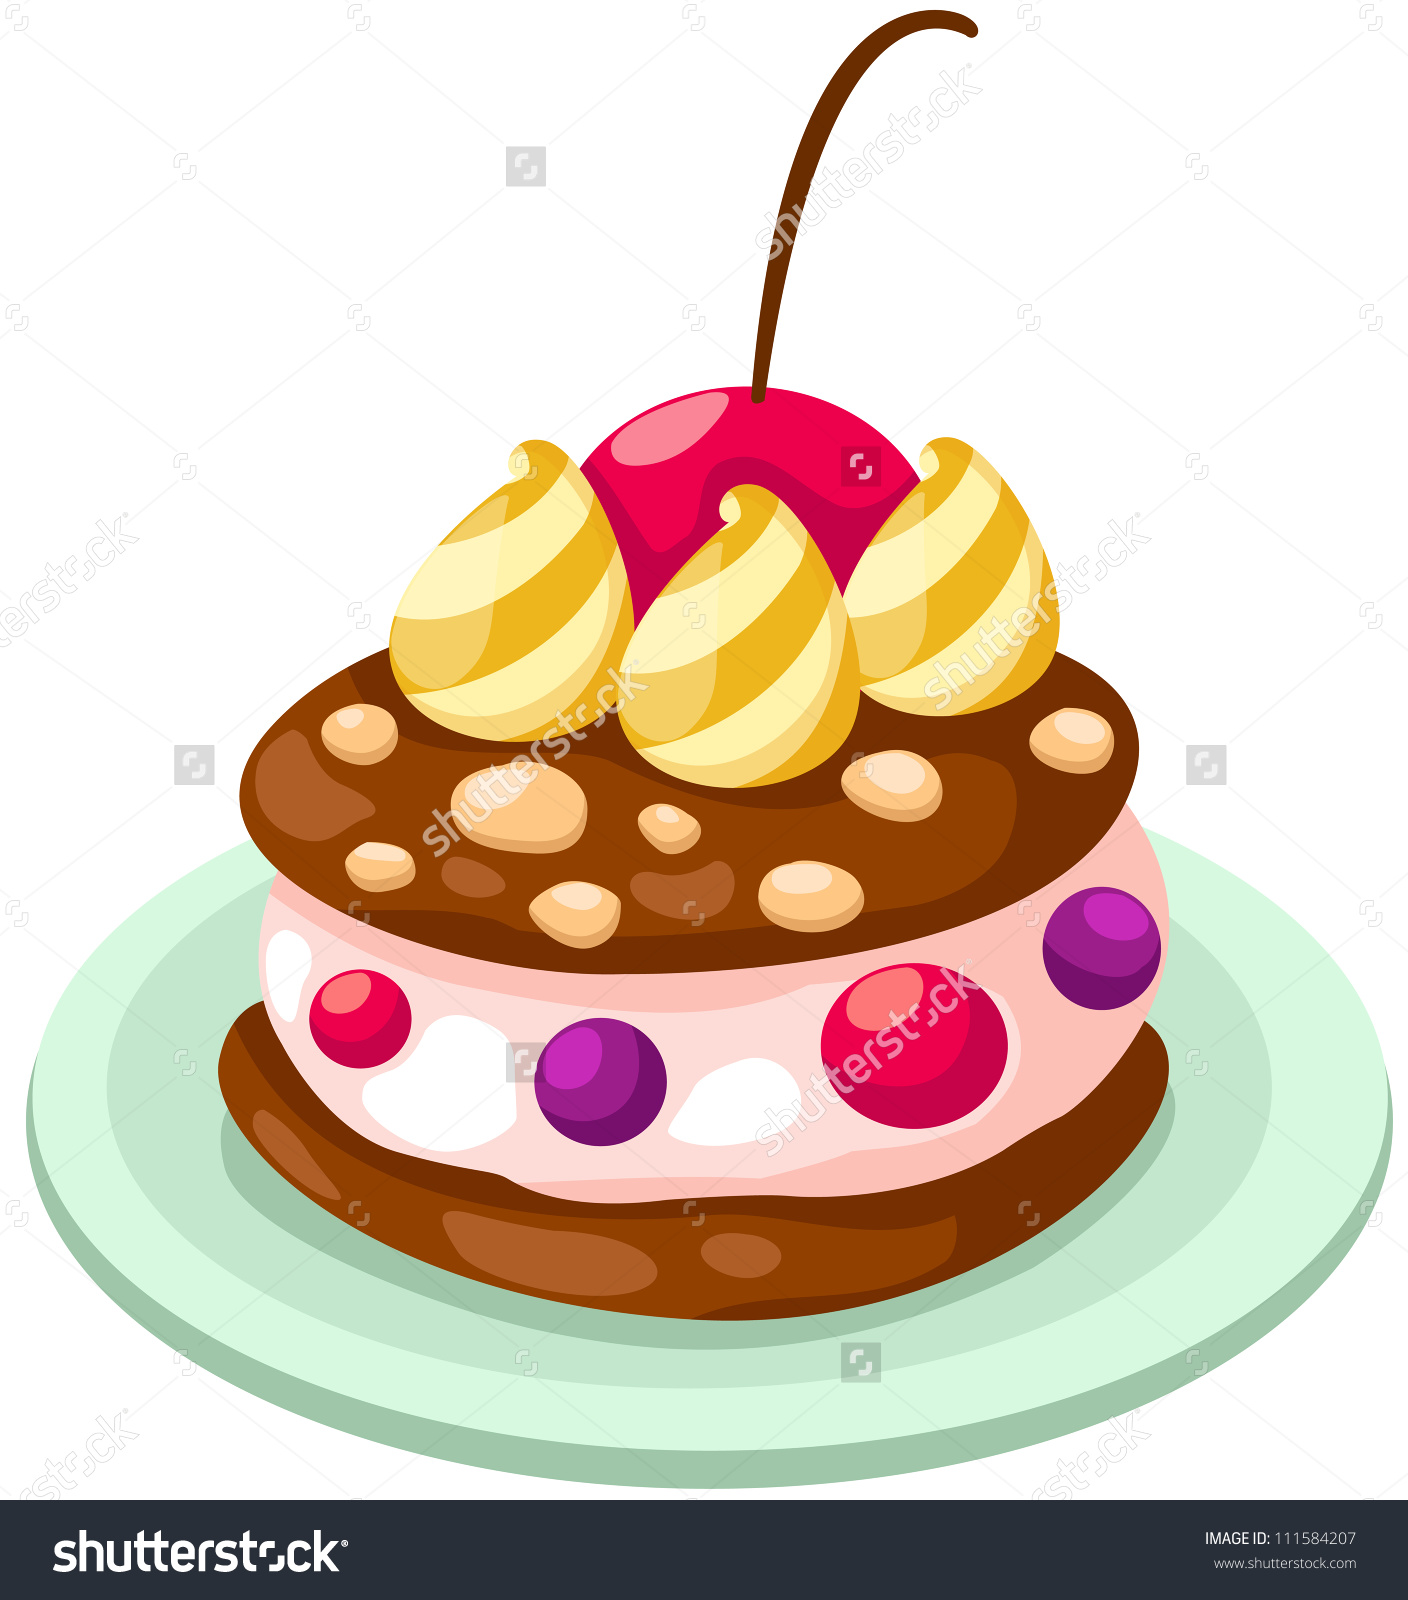 Ice Cream and Cake Clip Art.